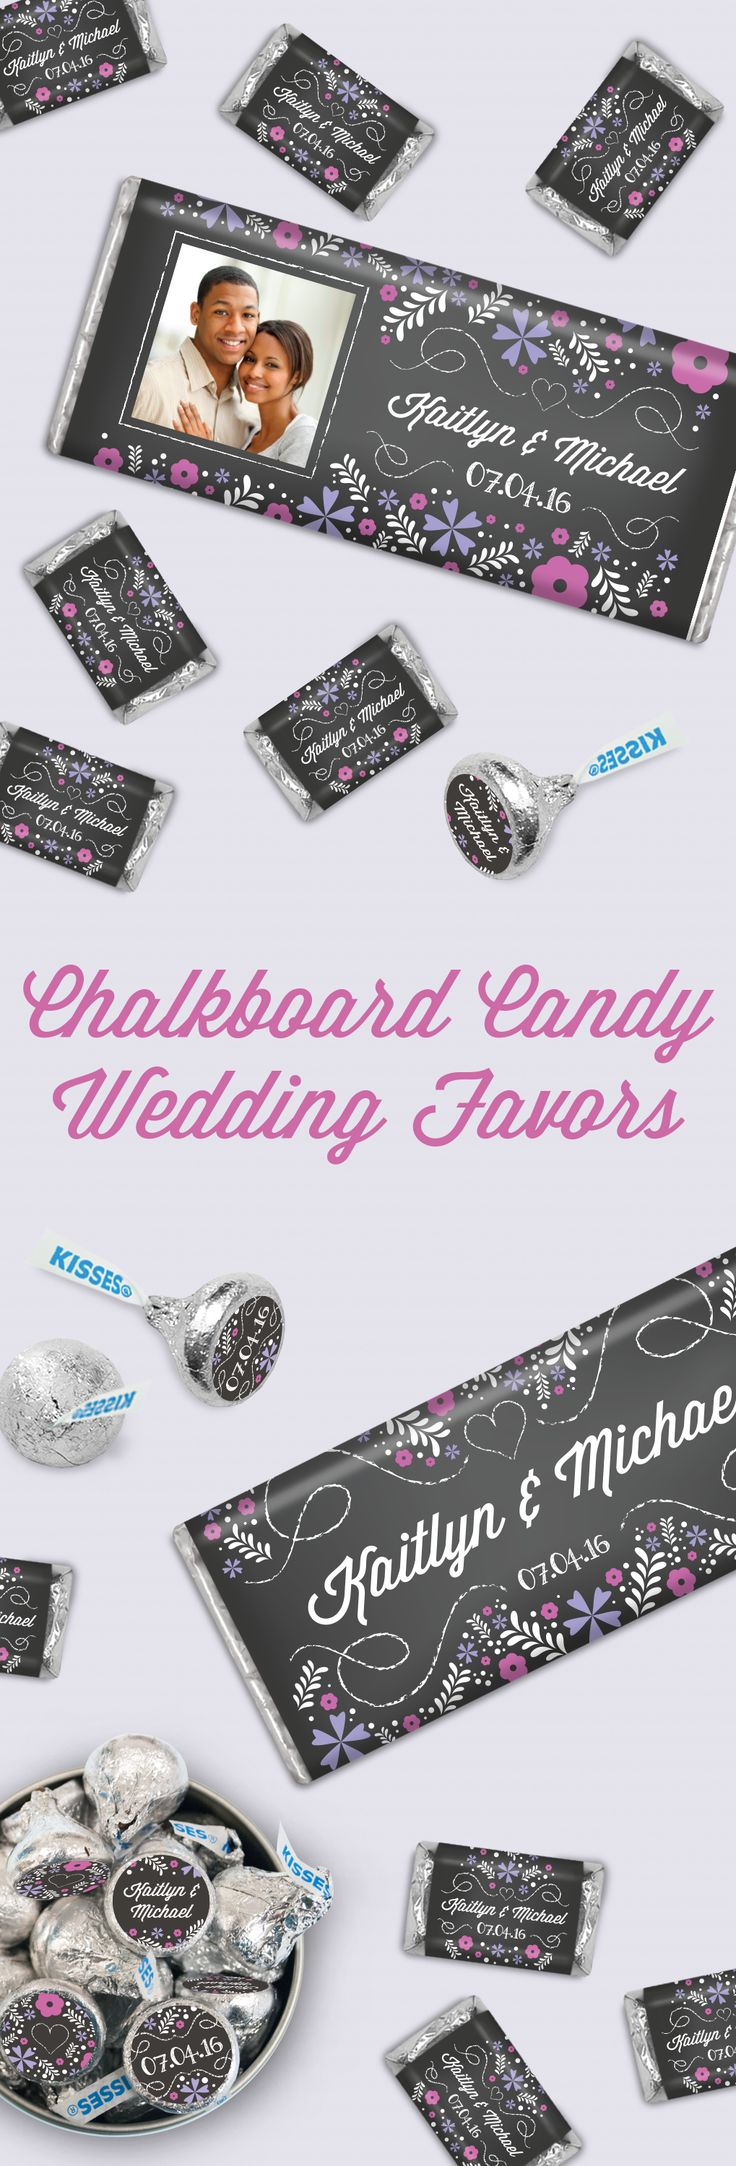 16 best Keke Wedding images on Pinterest | Candy stations, Candy ...